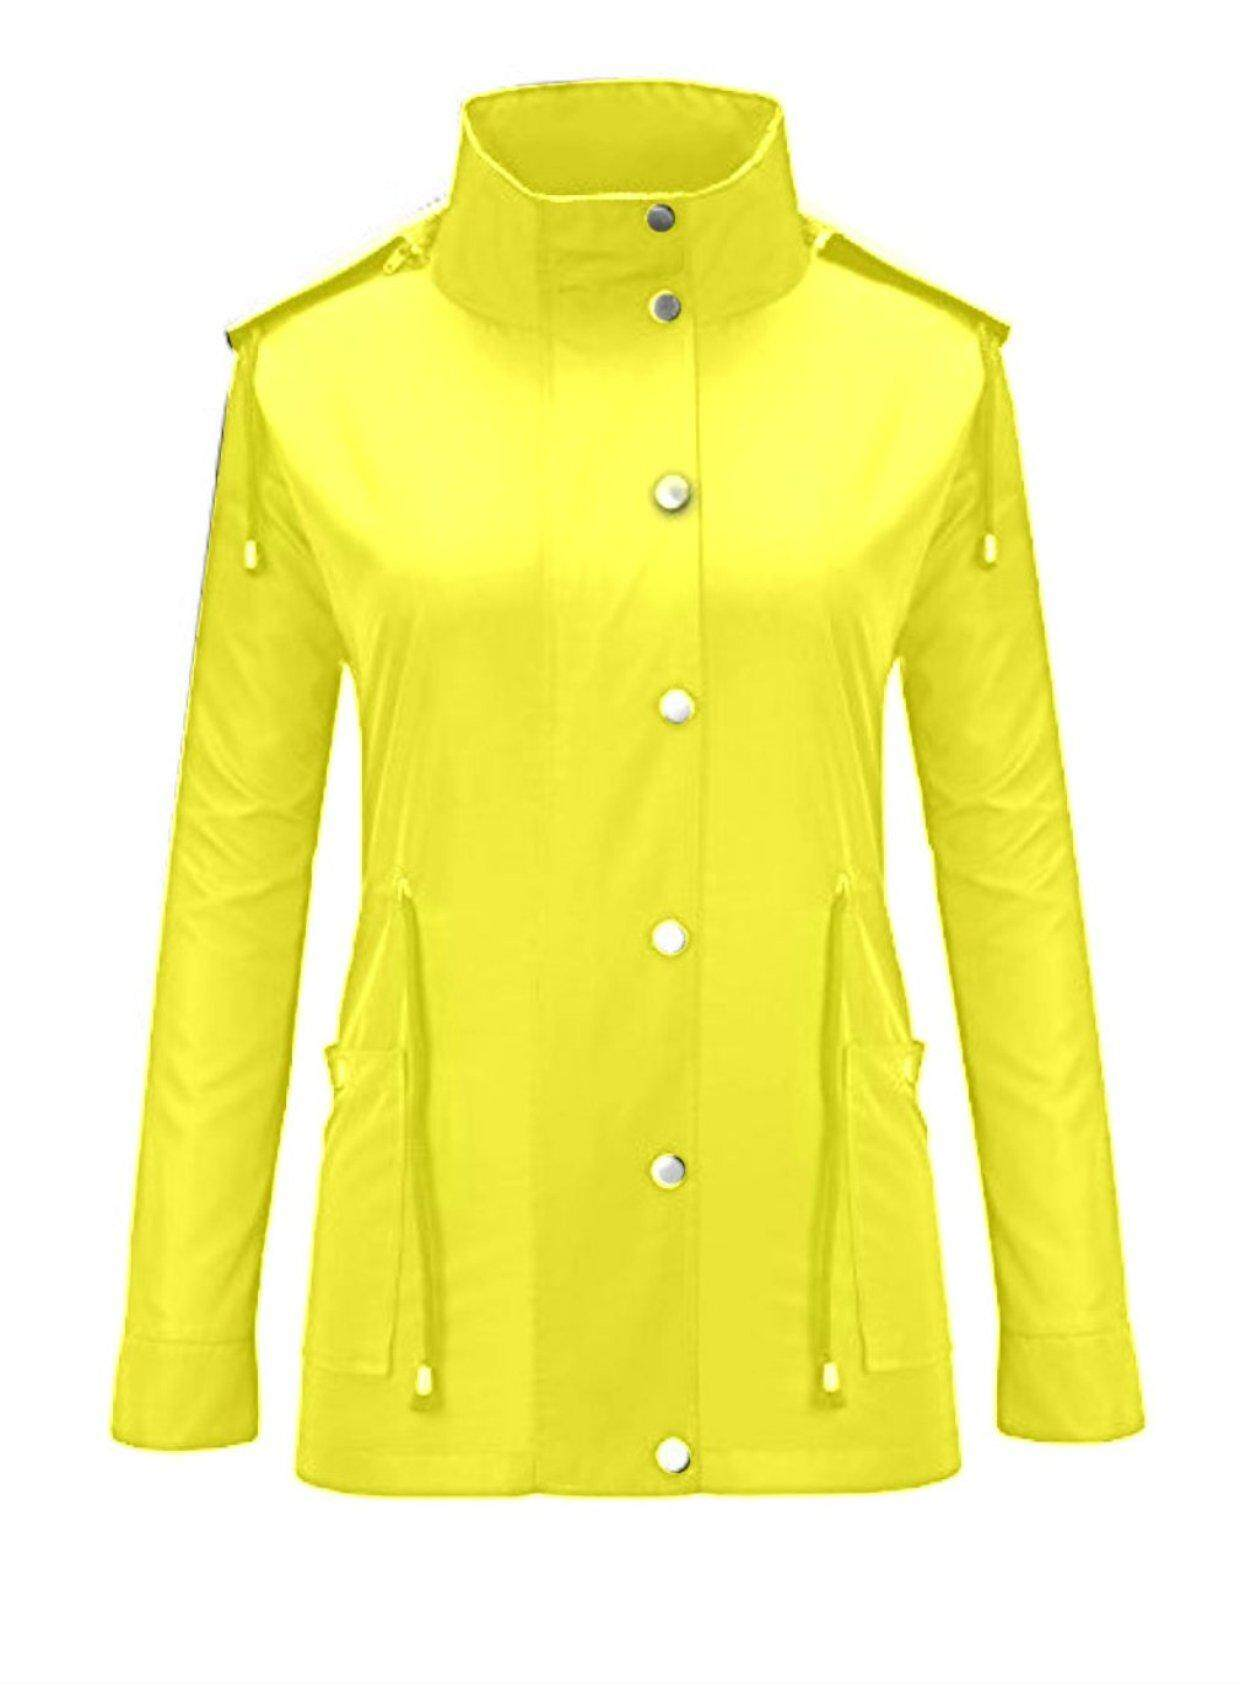 CELE Women Waterproof Hoodies Quick-drying Long Sleeve Outdoor Raincoat Lightweight